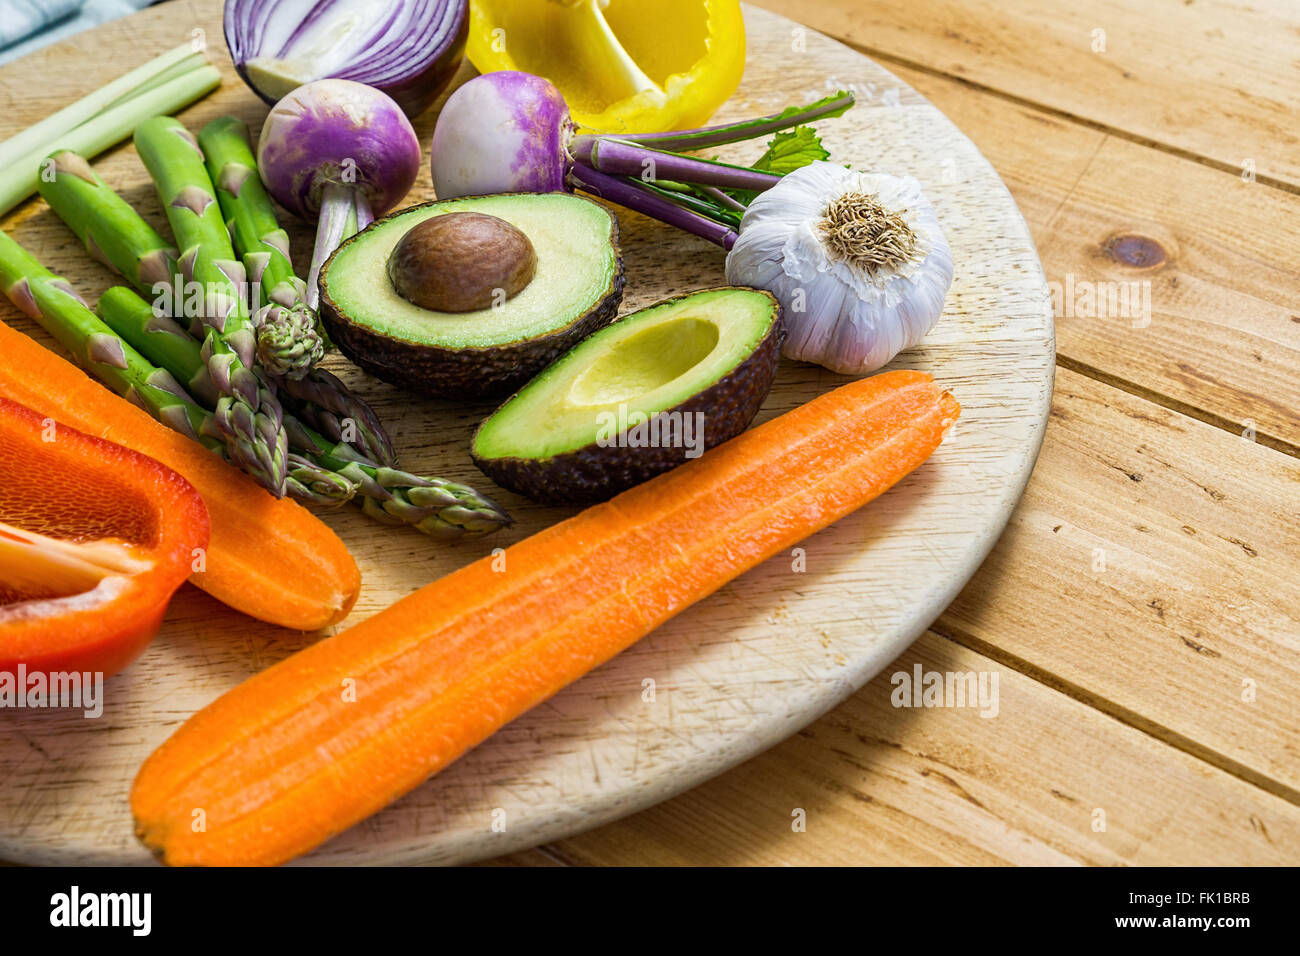 Mix of fresh vegetables sliced on a wooden table, flatly, asparagus avocado, bell peppers, onion - Stock Image